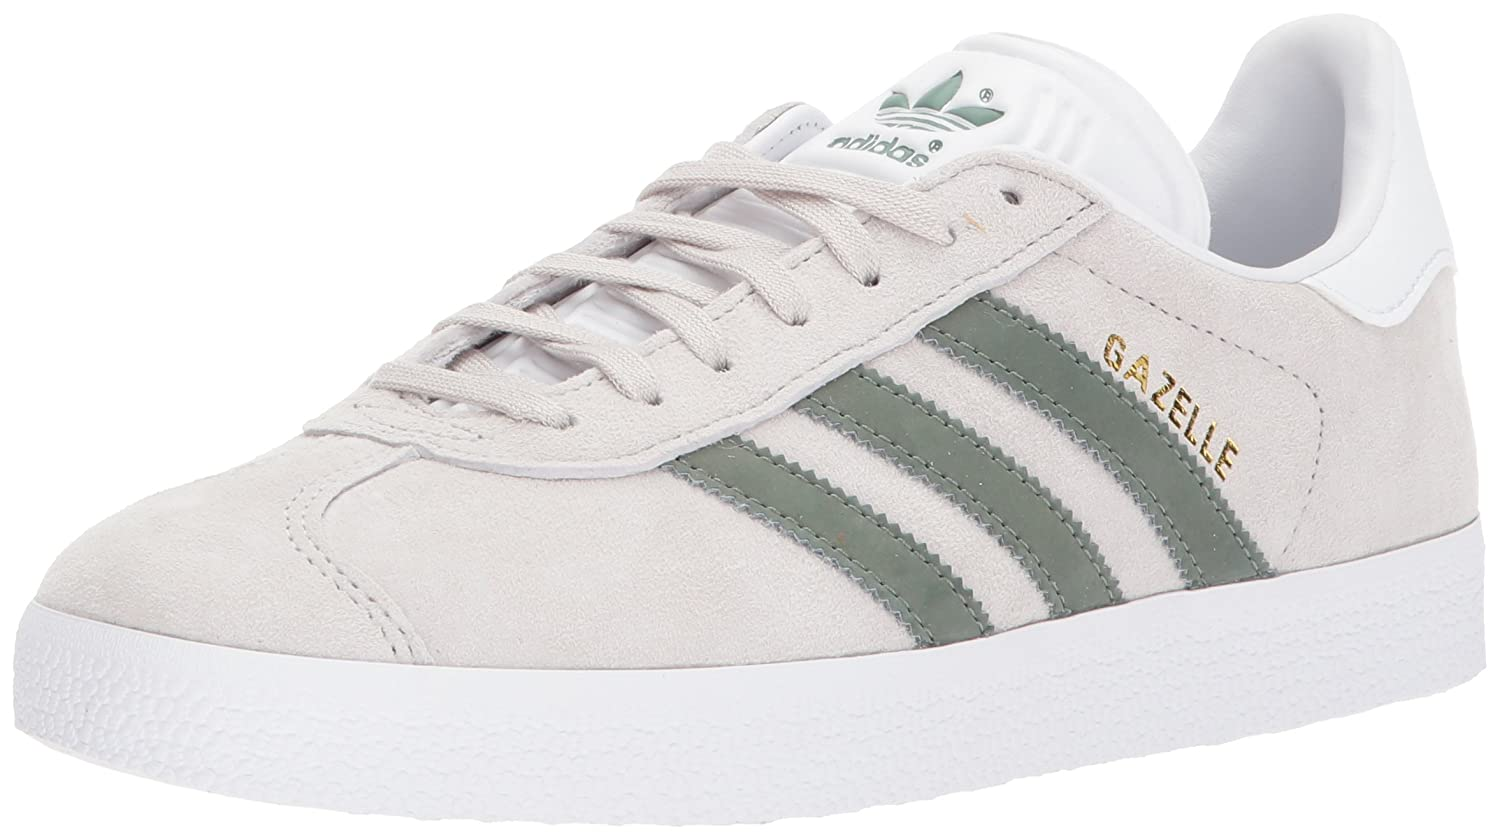 adidas gazelle ii green gold suede trainers adidas womens white athletic shoes